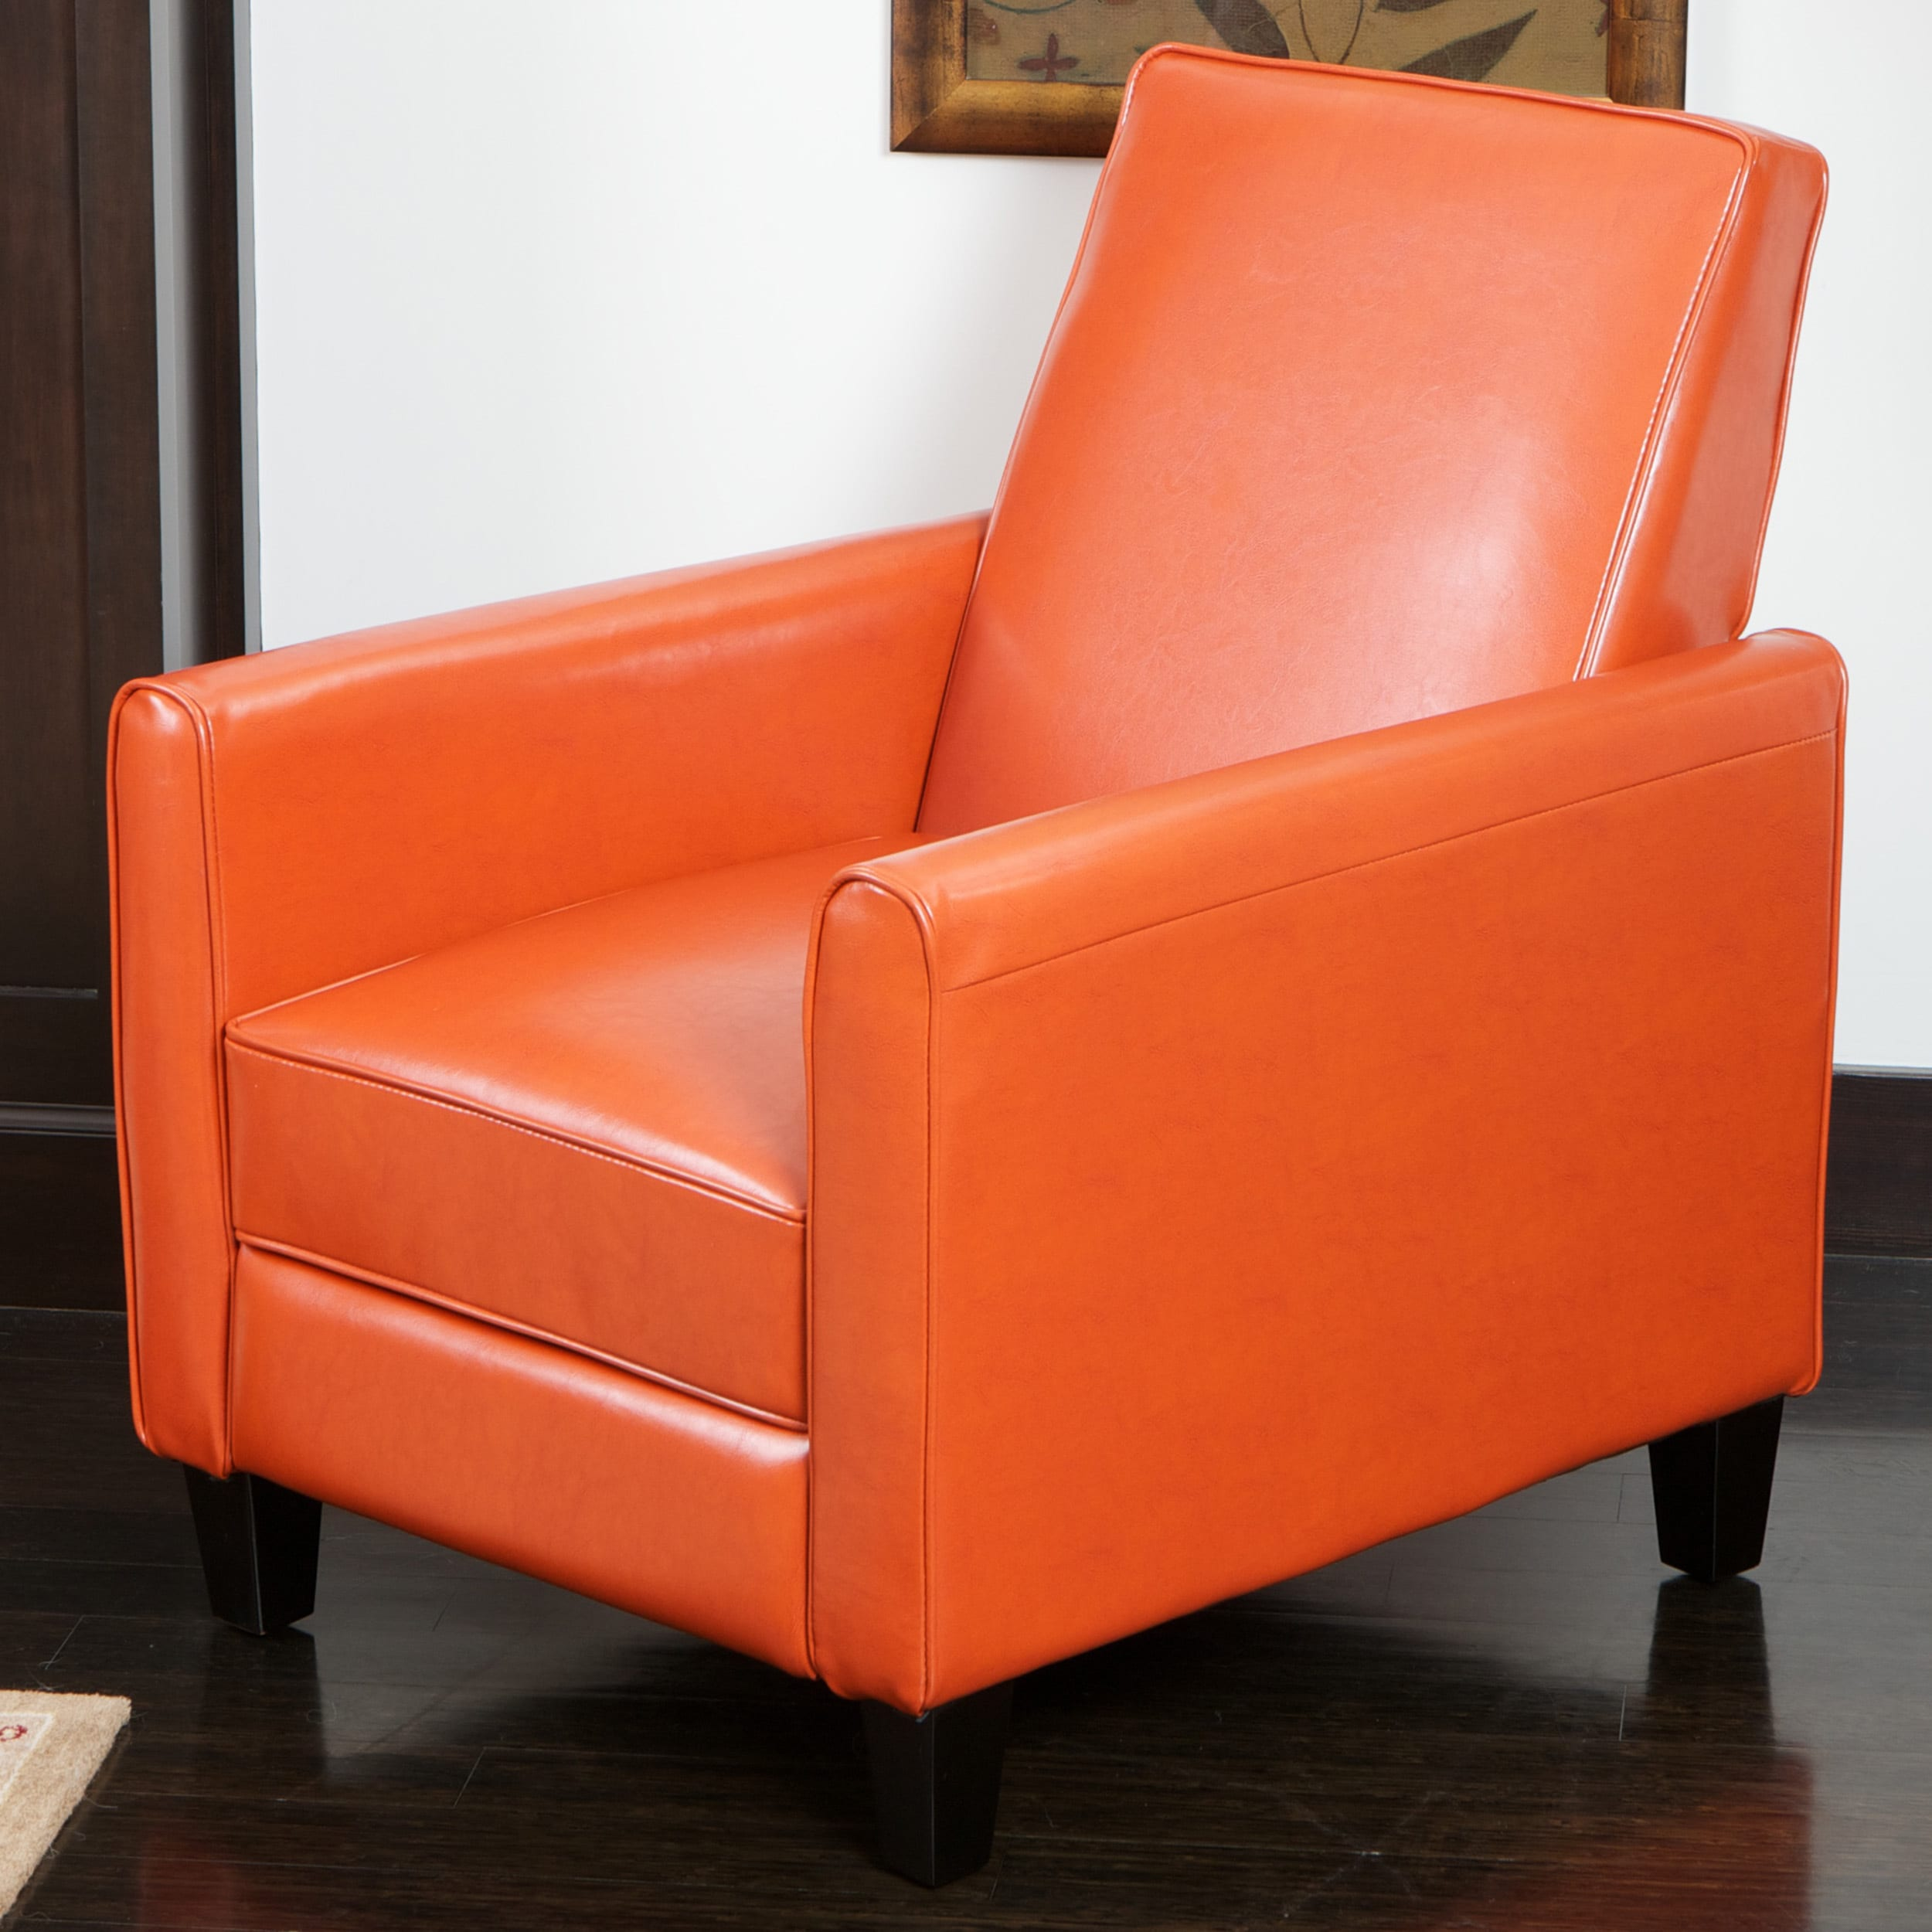 Charmant Shop Darvis Orange Bonded Leather Recliner Club Chair By Christopher Knight  Home   Free Shipping Today   Overstock.com   7915123